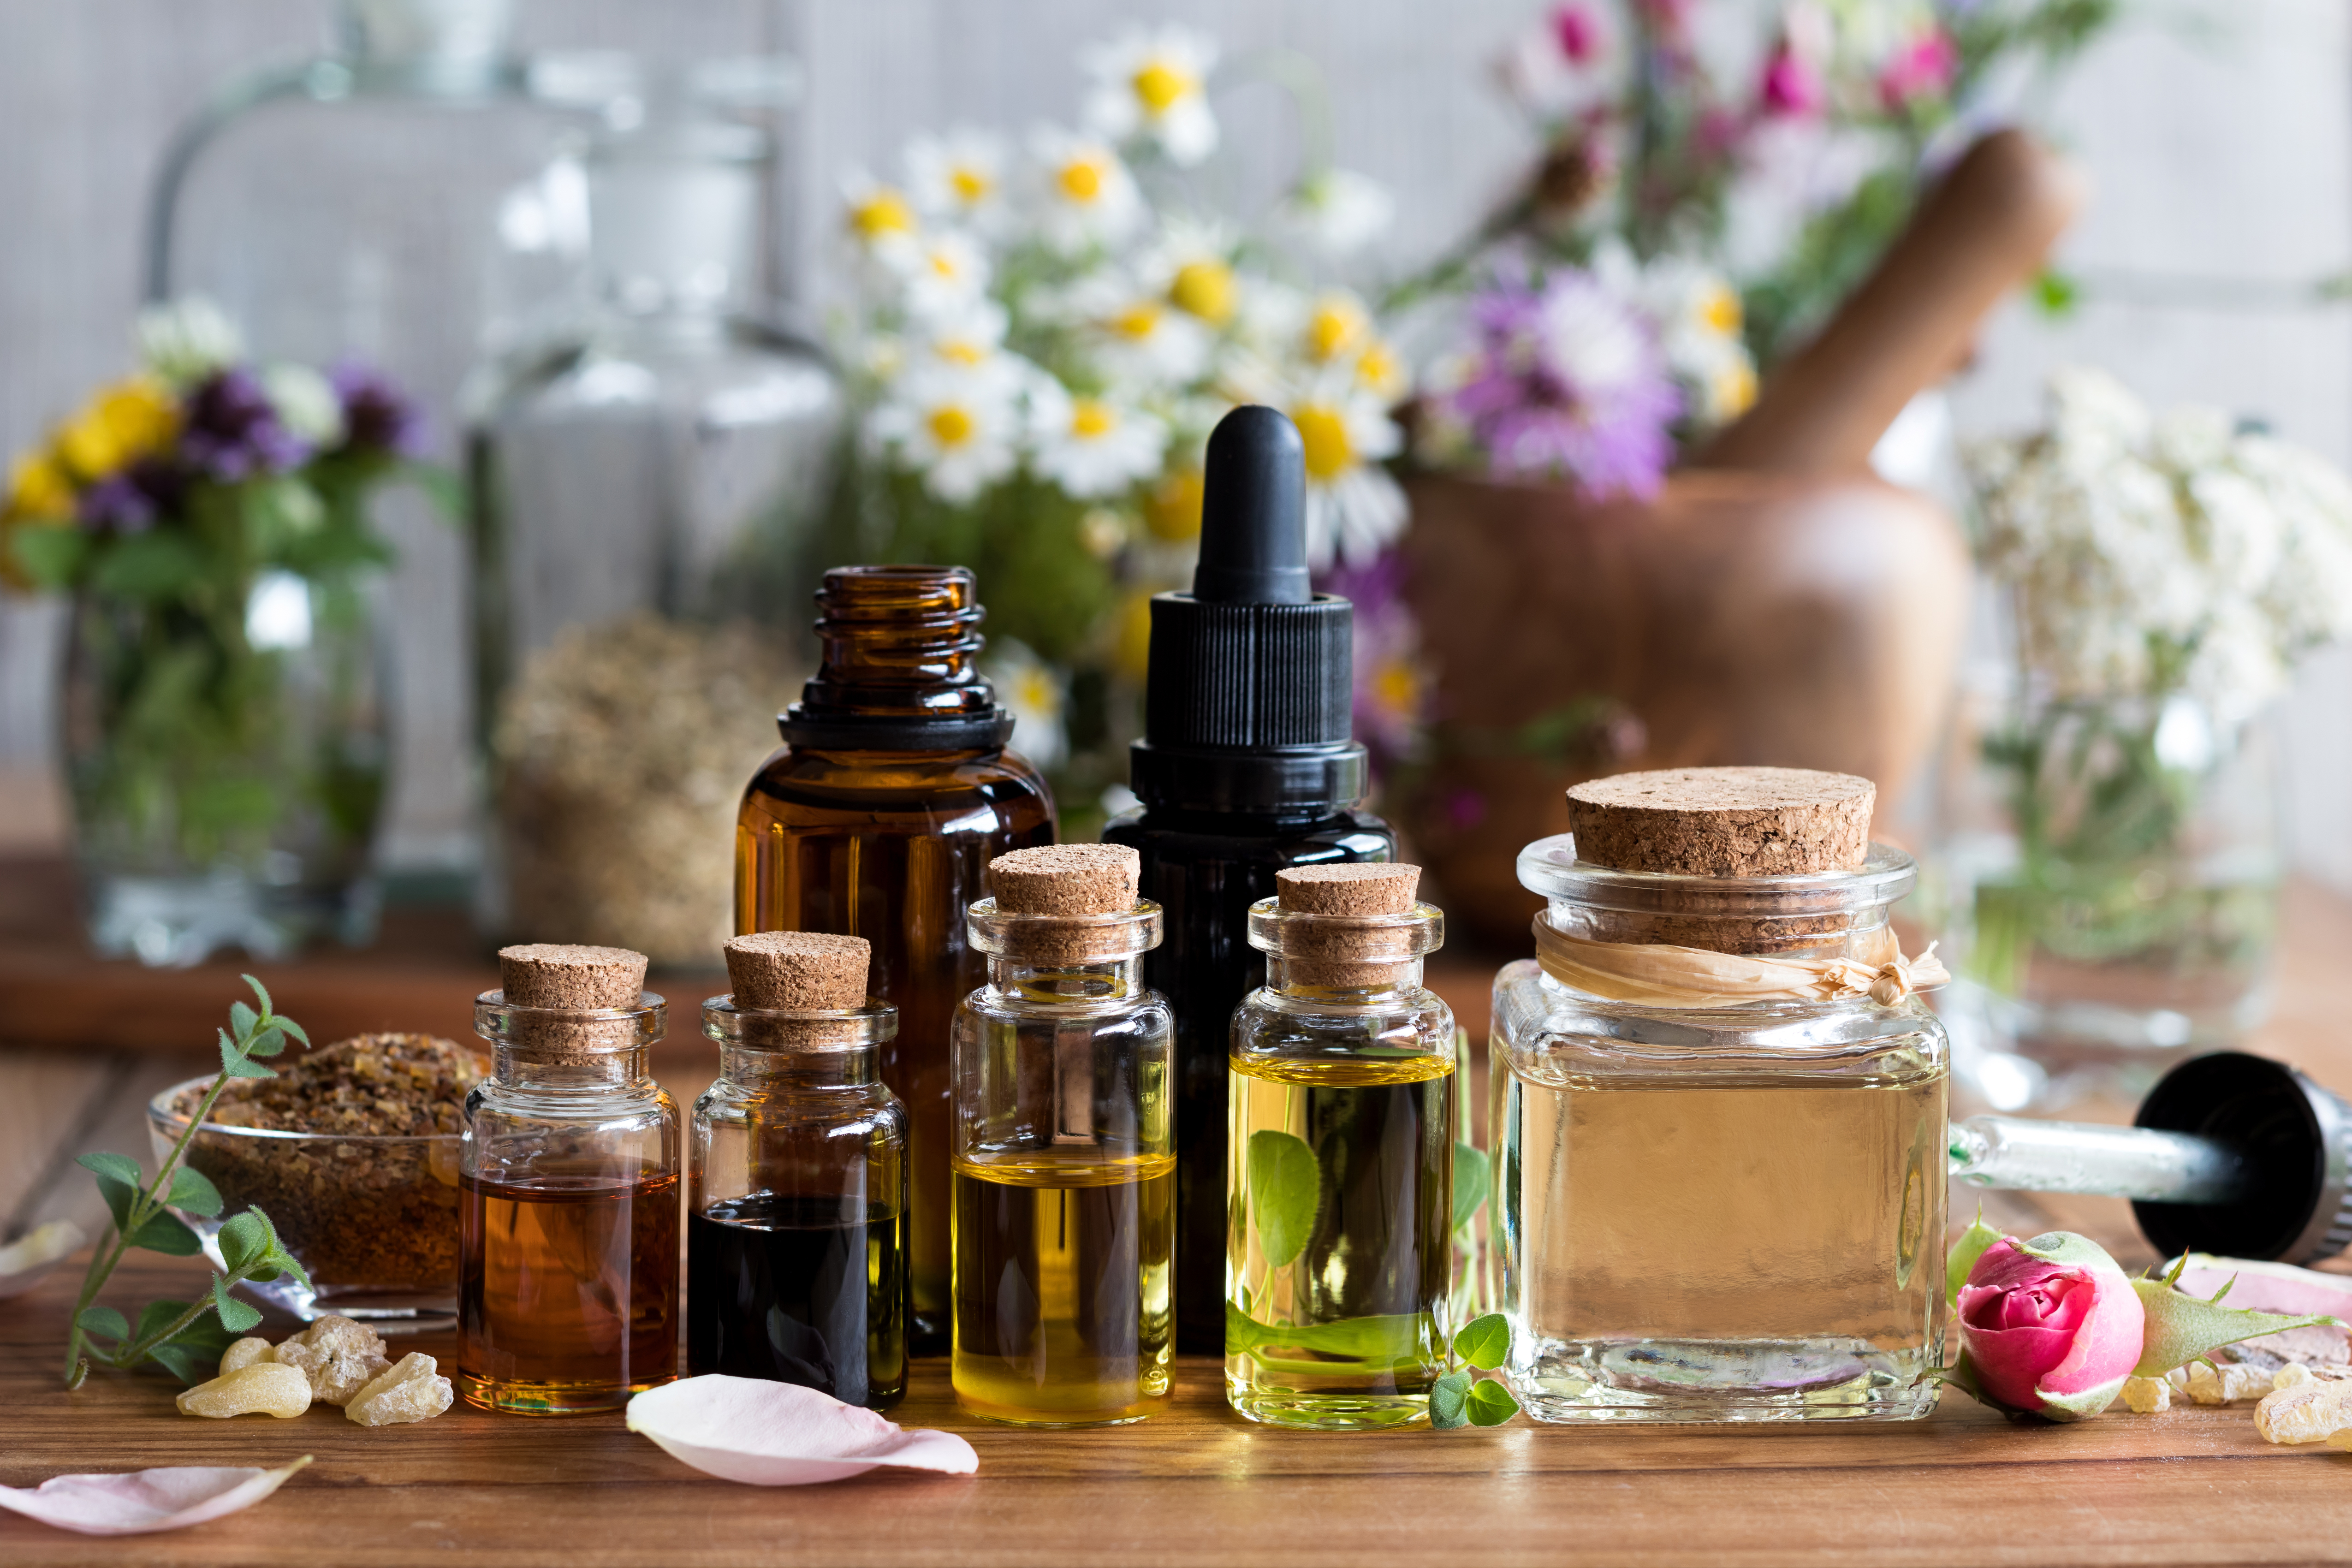 bottles of essential oils with daisies in background